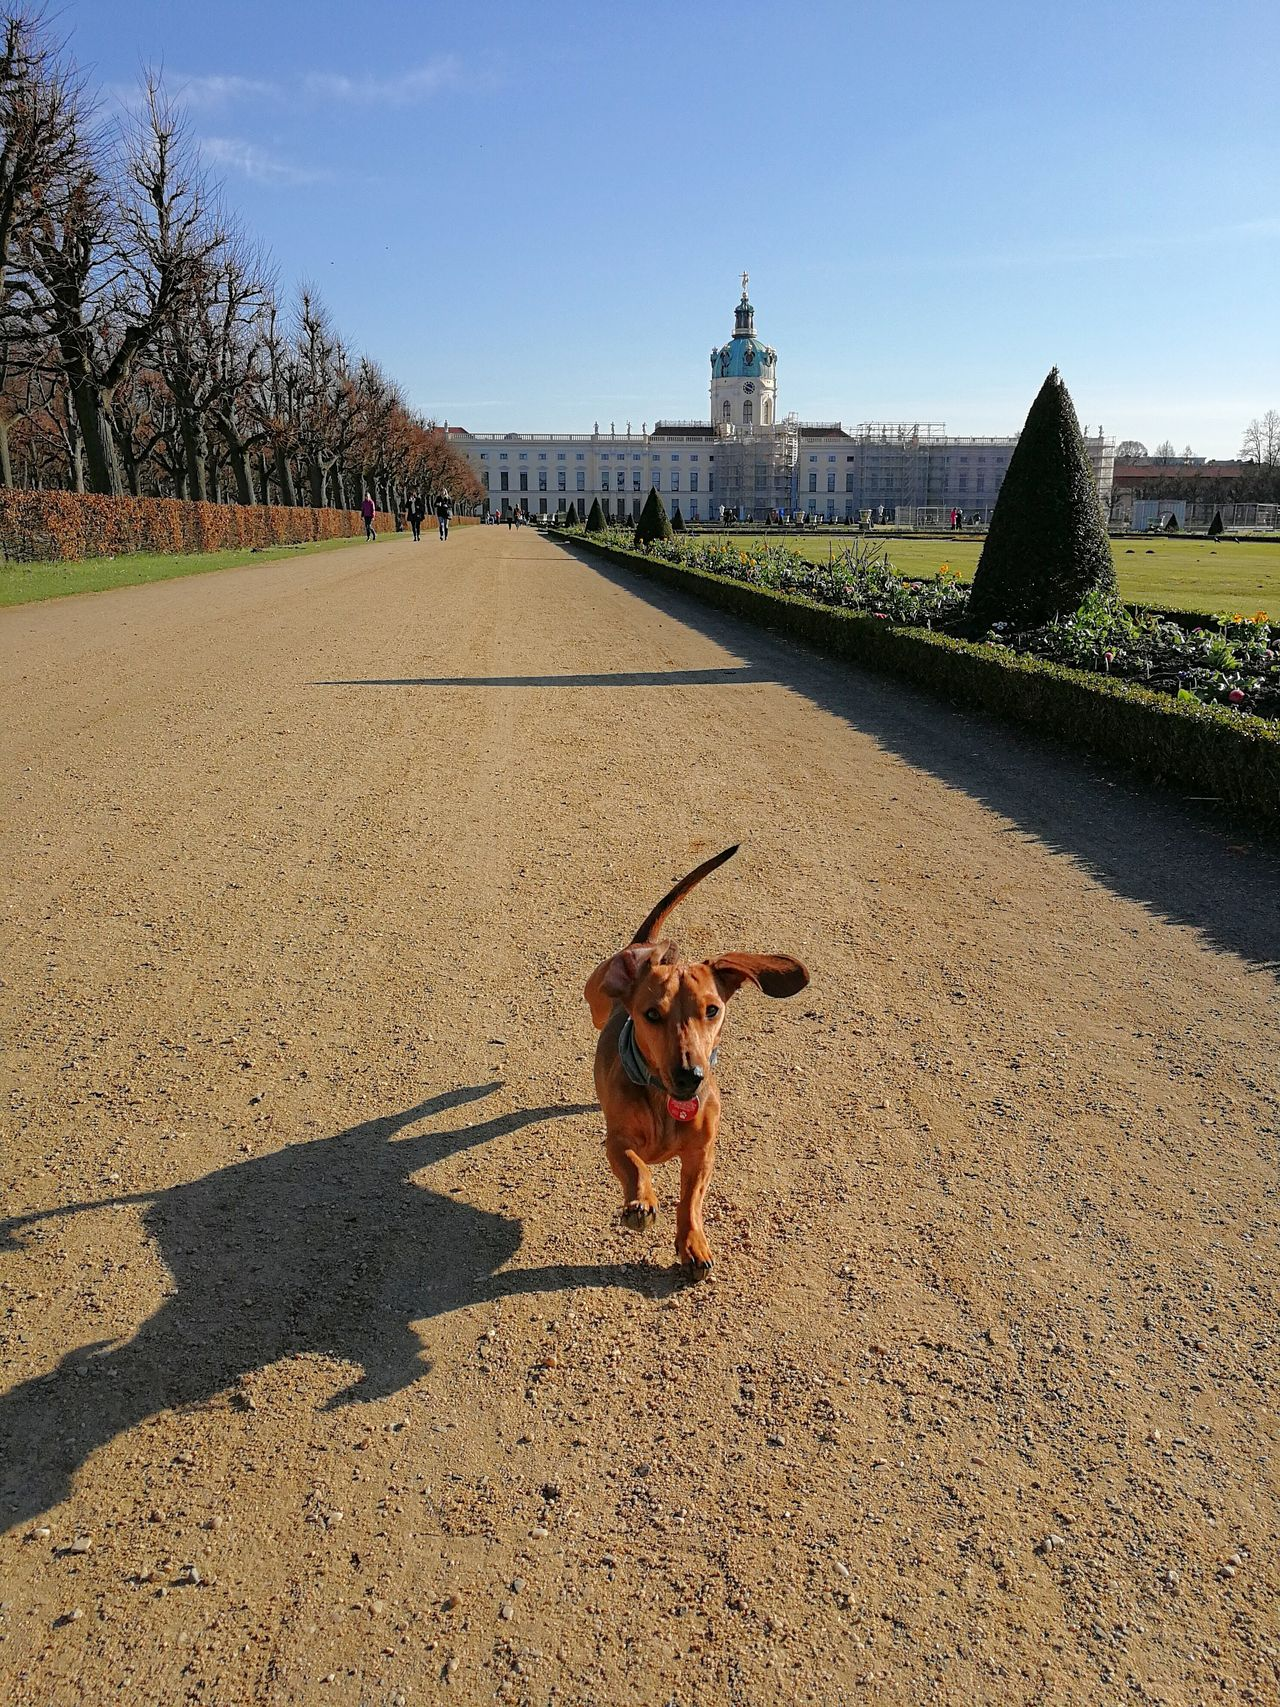 Castle Enjoying Nature Excercising Fun Garden Architecture Happy Dog In Motion Royal Garden Shadowplay Shadows & Lights Blue Sky City Dachshund Dog Enjoying Life Nature No Clouds No People One Animal Running Dachshund Running Dog Running Teckel Shadow Sunlight Teckel Amor Mio